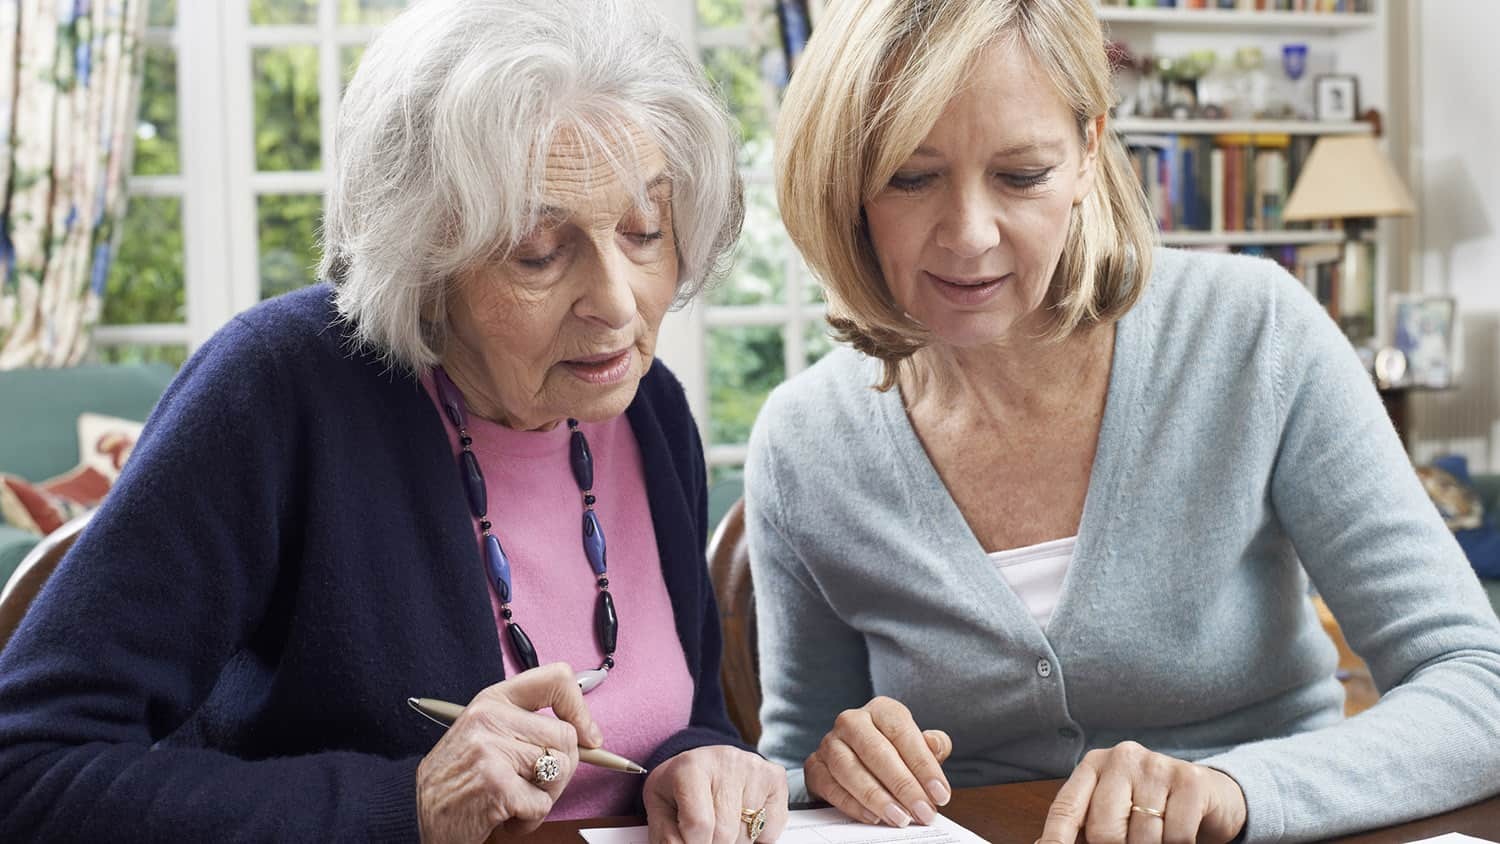 4 Important Conversations To Have With Your Aging Parents